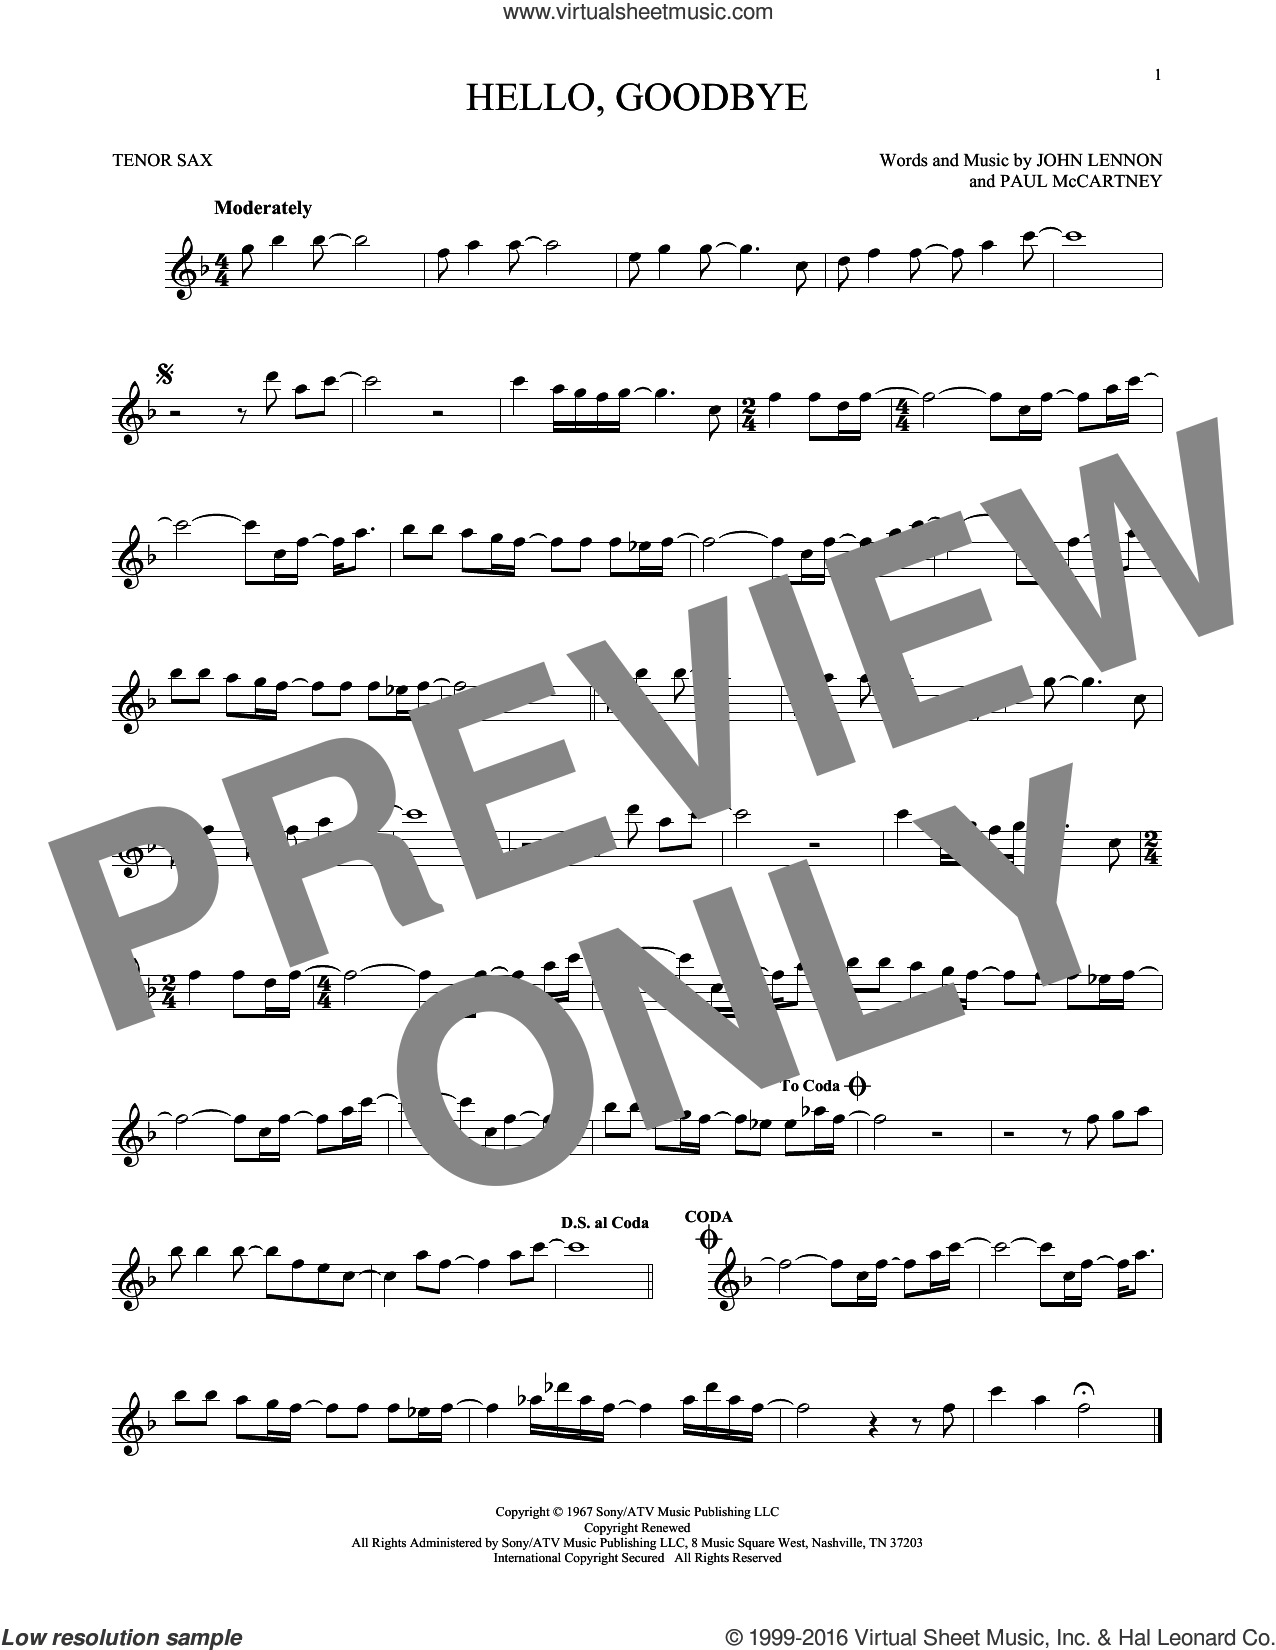 Hello, Goodbye sheet music for tenor saxophone solo by The Beatles, John Lennon and Paul McCartney, intermediate